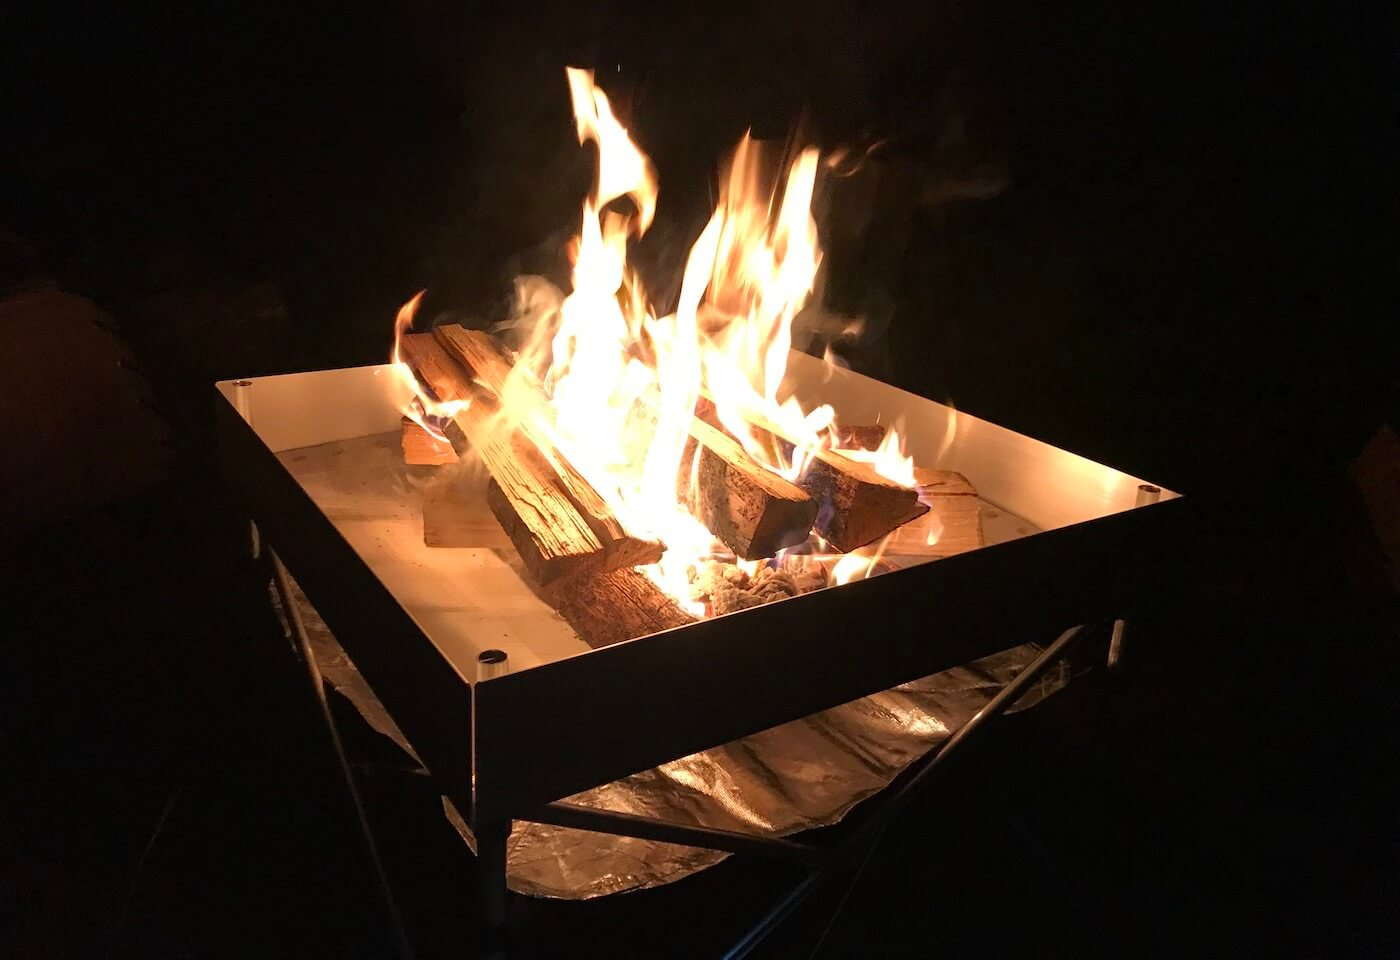 Are You Self-conscious By Your Lp Fire Pit Abilities?